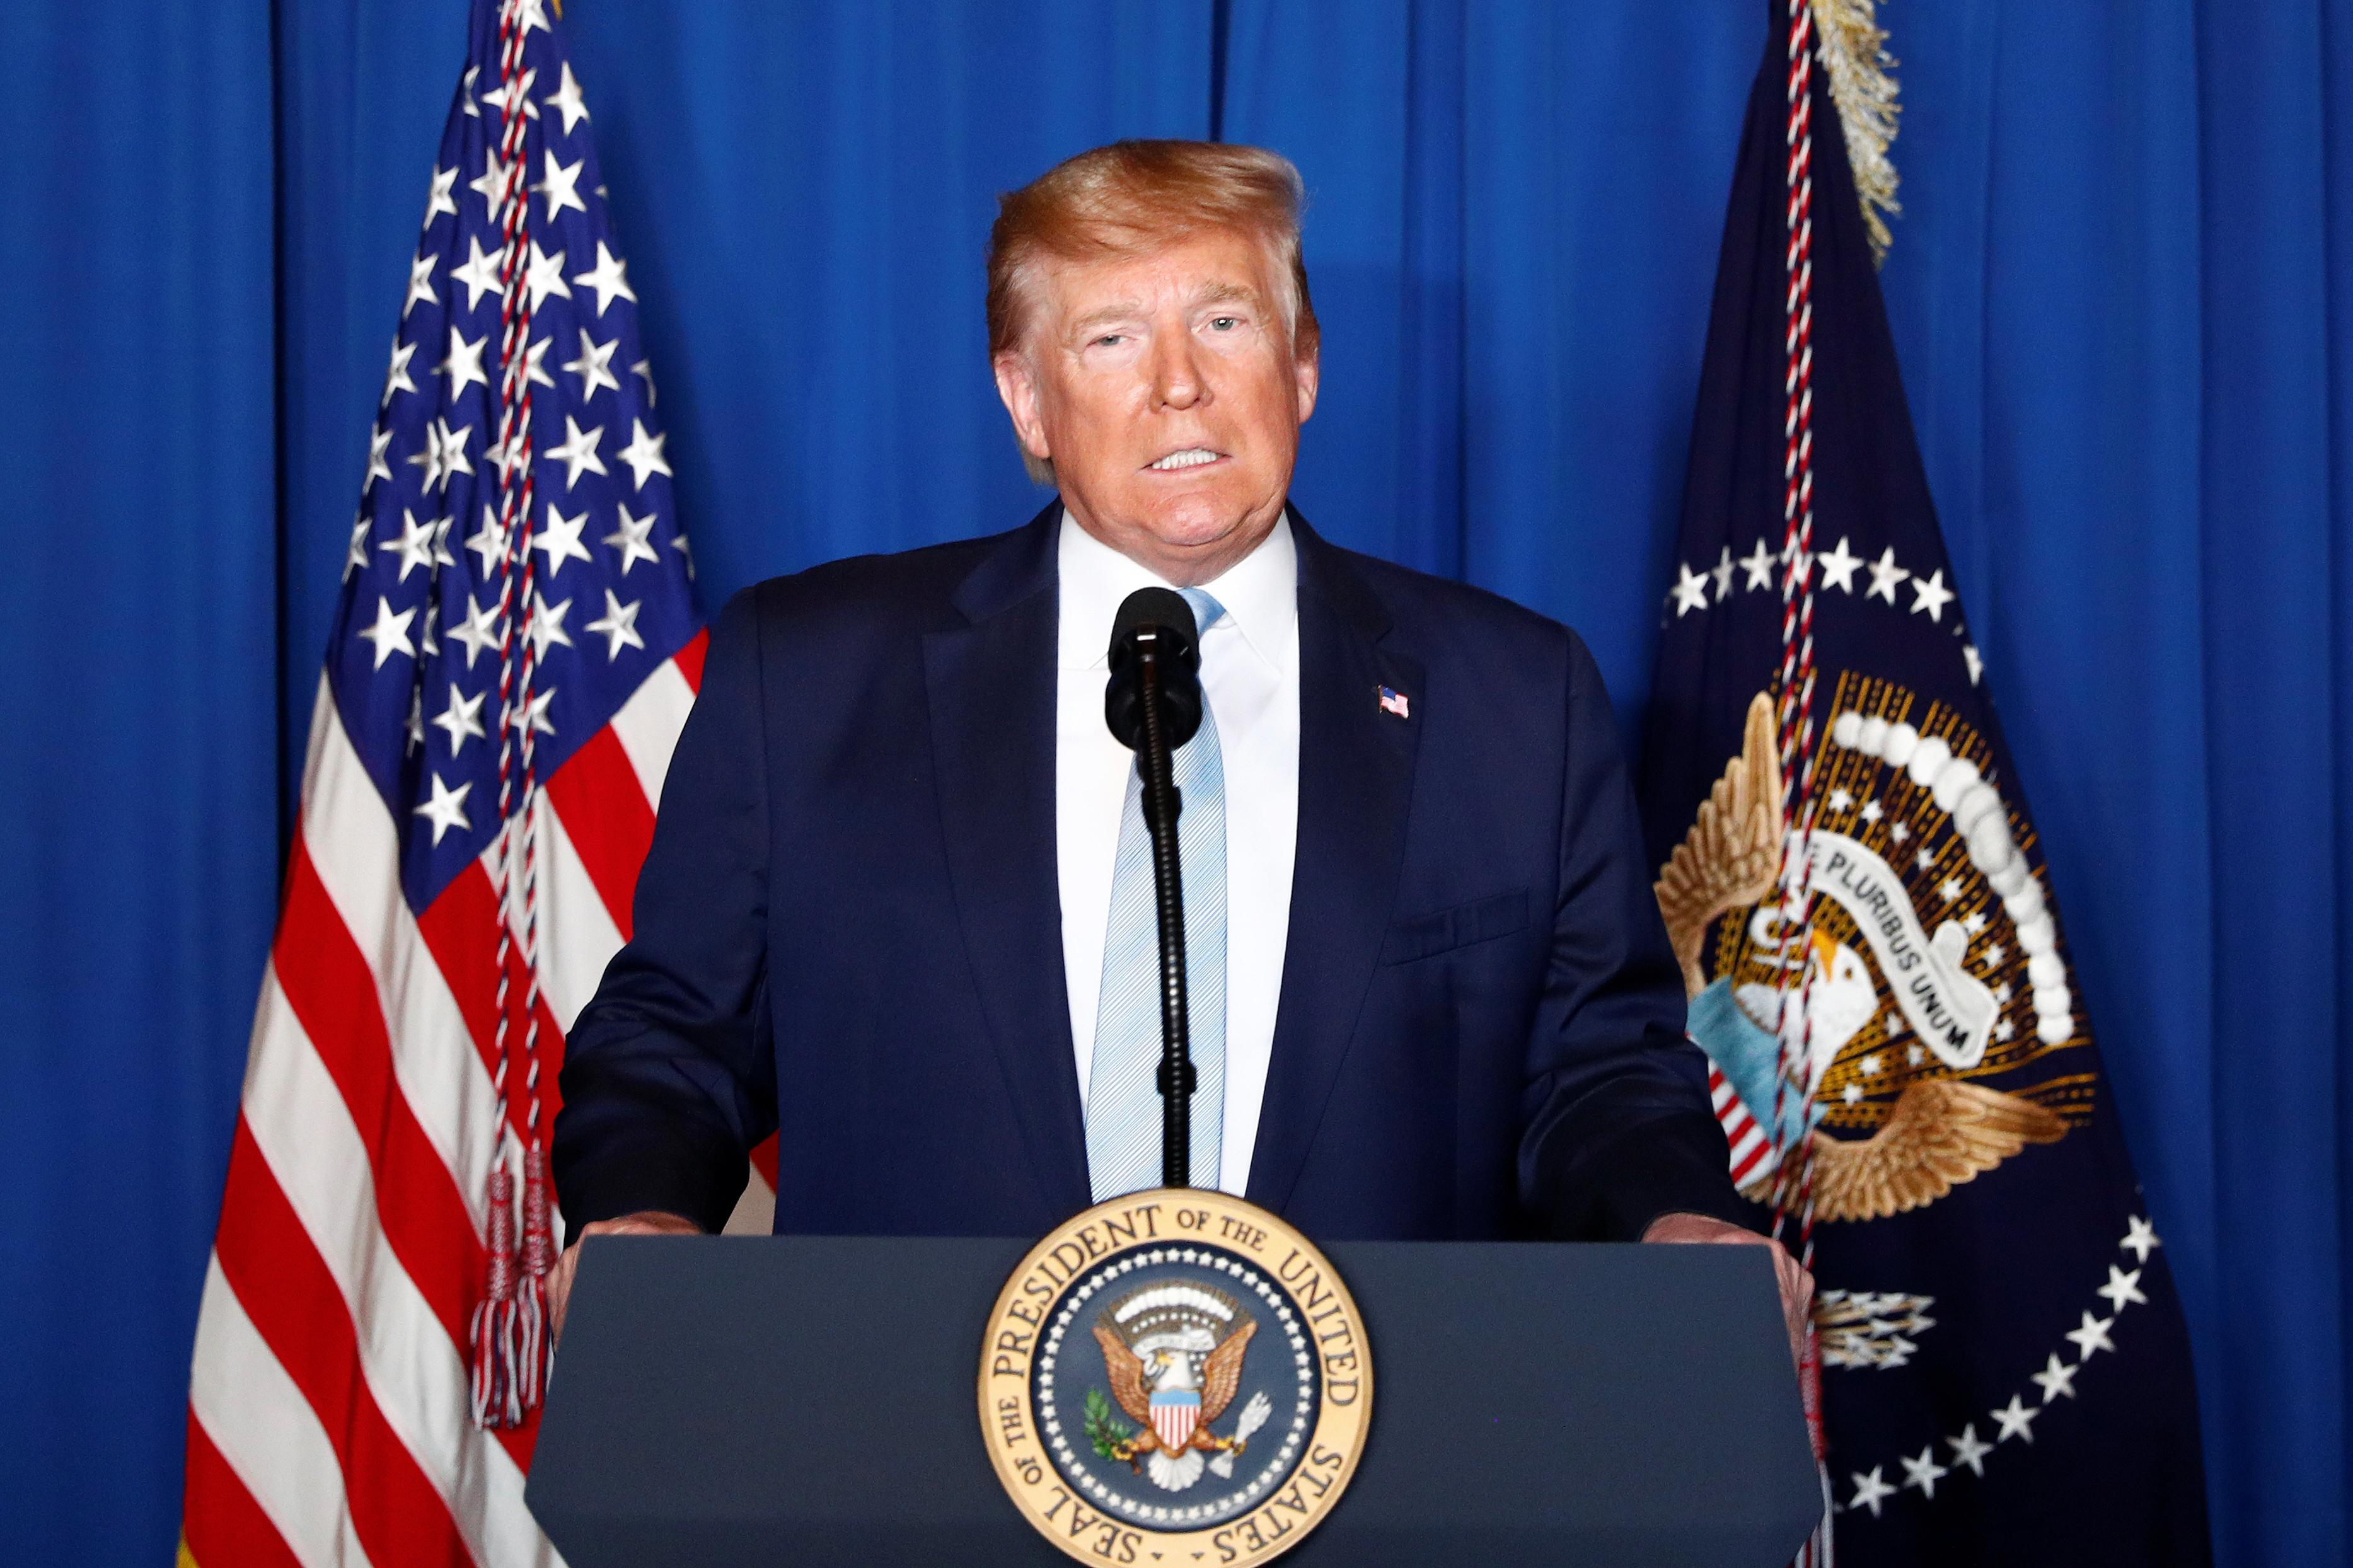 U.S. President Donald Trump delivers remarks following the U.S. Military airstrike against Iranian General Qassem Soleimani in Baghdad, Iraq, in West Palm Beach, Florida, U.S., January 3, 2020. REUTERS/Tom Brenner